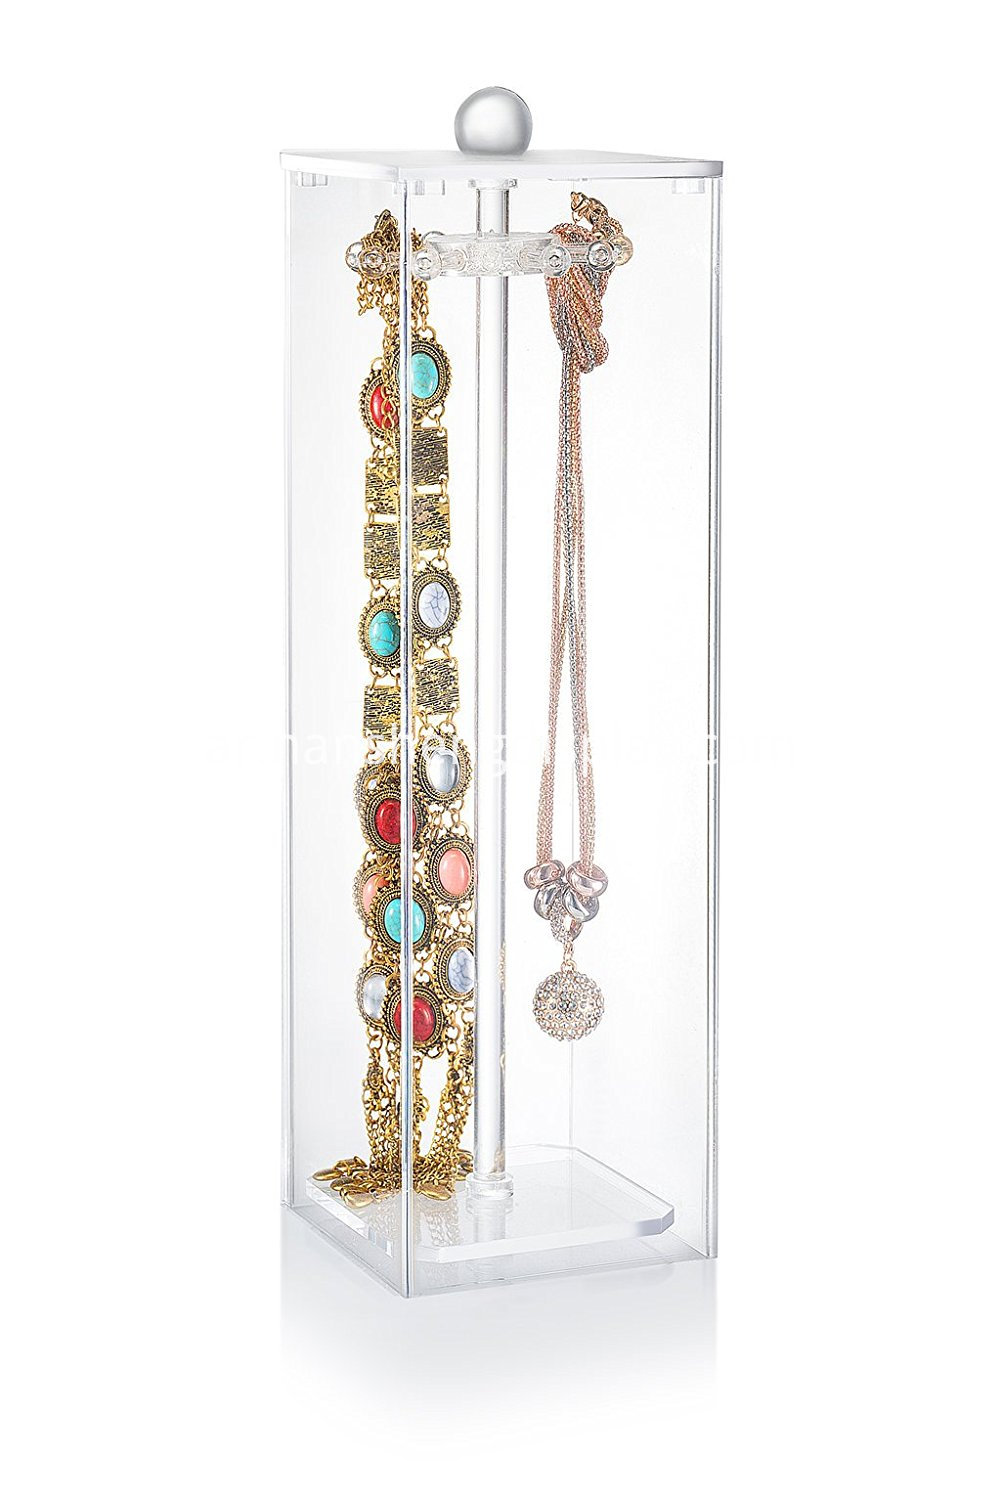 hanging jewelry organizer necklaces